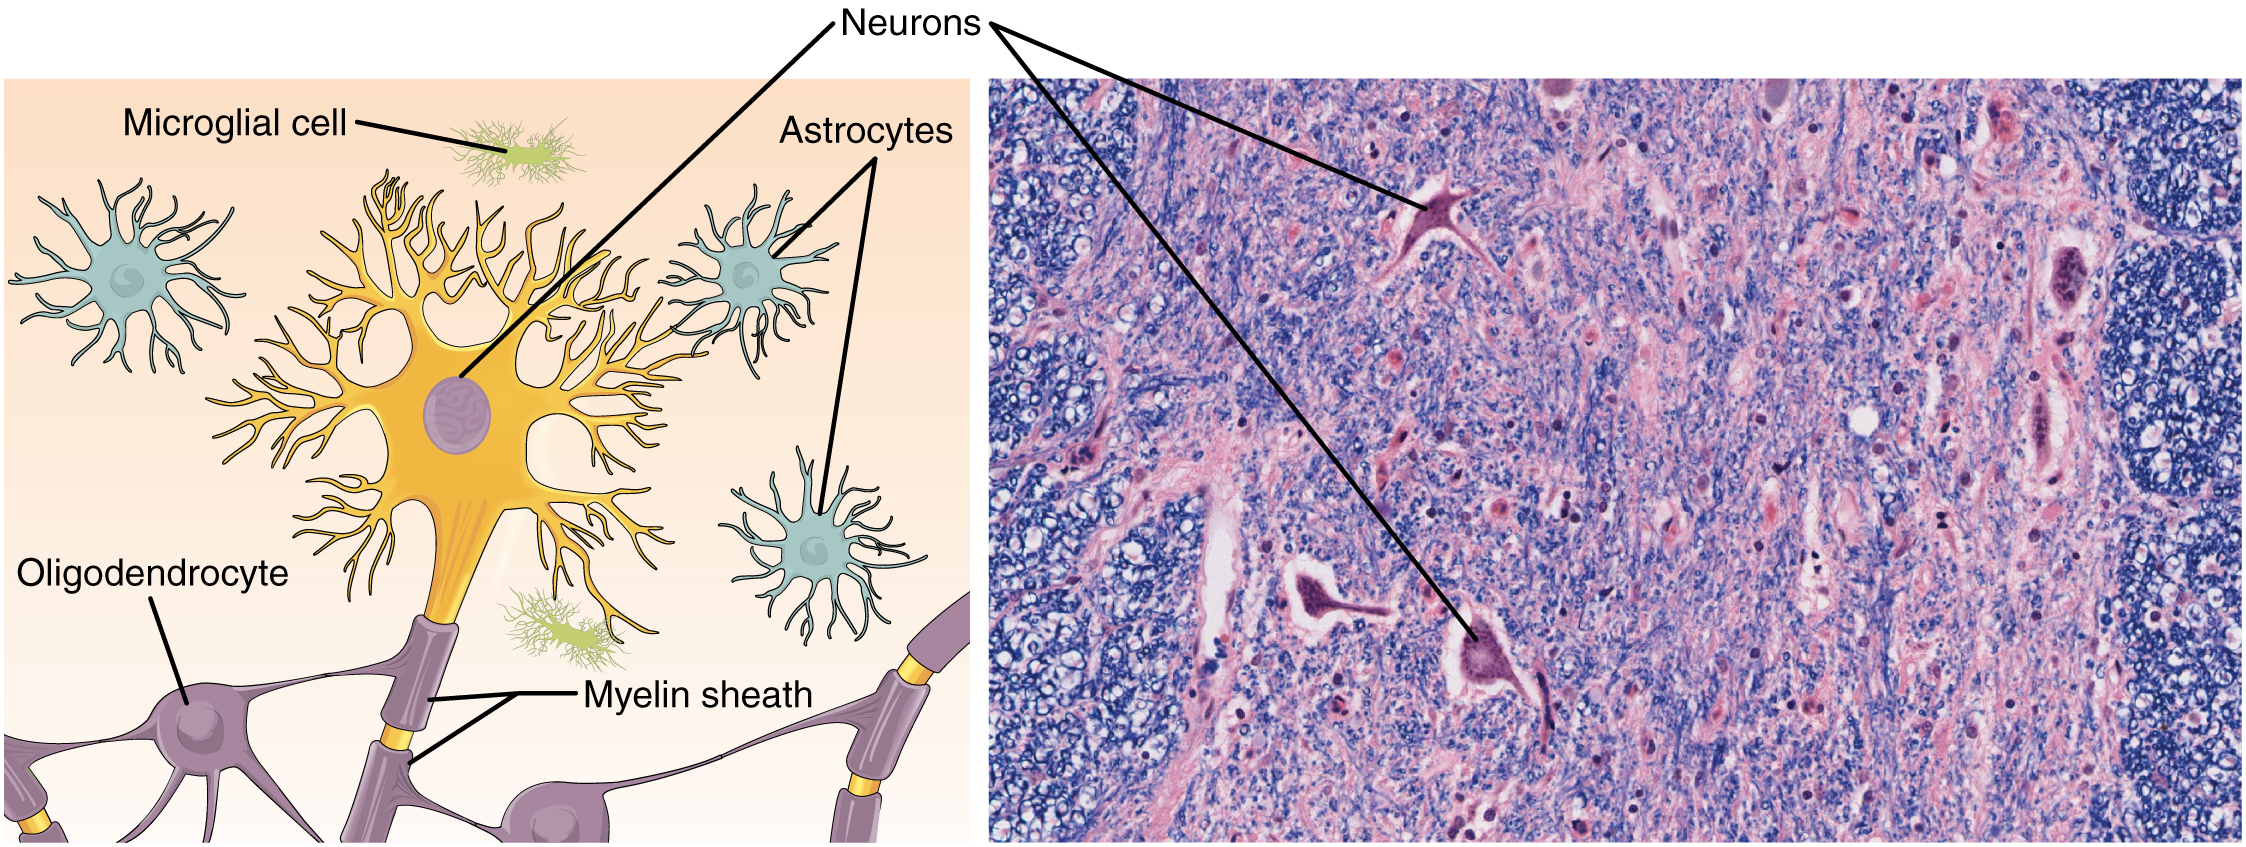 Part A of this diagram shows various types of nerve cells. The largest cell is a neuron. The central body of the neuron contains a single nucleus. Six sets of dendrites project from the top, left and right, edges of the neuron. The dendrites are yellow and branch many times after leaving the cell, taking on the appearance of tiny trees. The axon projects from the bottom edge of the cell and is covered with purple sheaths labeled the myelin sheath. The sheath is not continuous, but instead is a series of equally spaced segments along the axon. Another cell, called an oligodendrocyte, is spider like in appearance, with its leg-like projections each connecting to a segment of the neuron's myelin sheath. Above the neuron are three astrocytes. They are much smaller than the neuron and have no axons, and are also irregularly shaped cells with many dendrites projecting from the central body. Finally, a microglial cell is shown above the neuron. It is the smallest of the cells in this figure and is an elongated cell with many fine, tentacle-like projections. The projections are concentrated at the two ends of the cell, with the middle area lacking any projections. The micrograph of the neural tissue shows that this tissue is very heterogenous, with both large and small cells embedded in the matrix. Much of the space between the cells is occupied by threadlike nerve fibers.